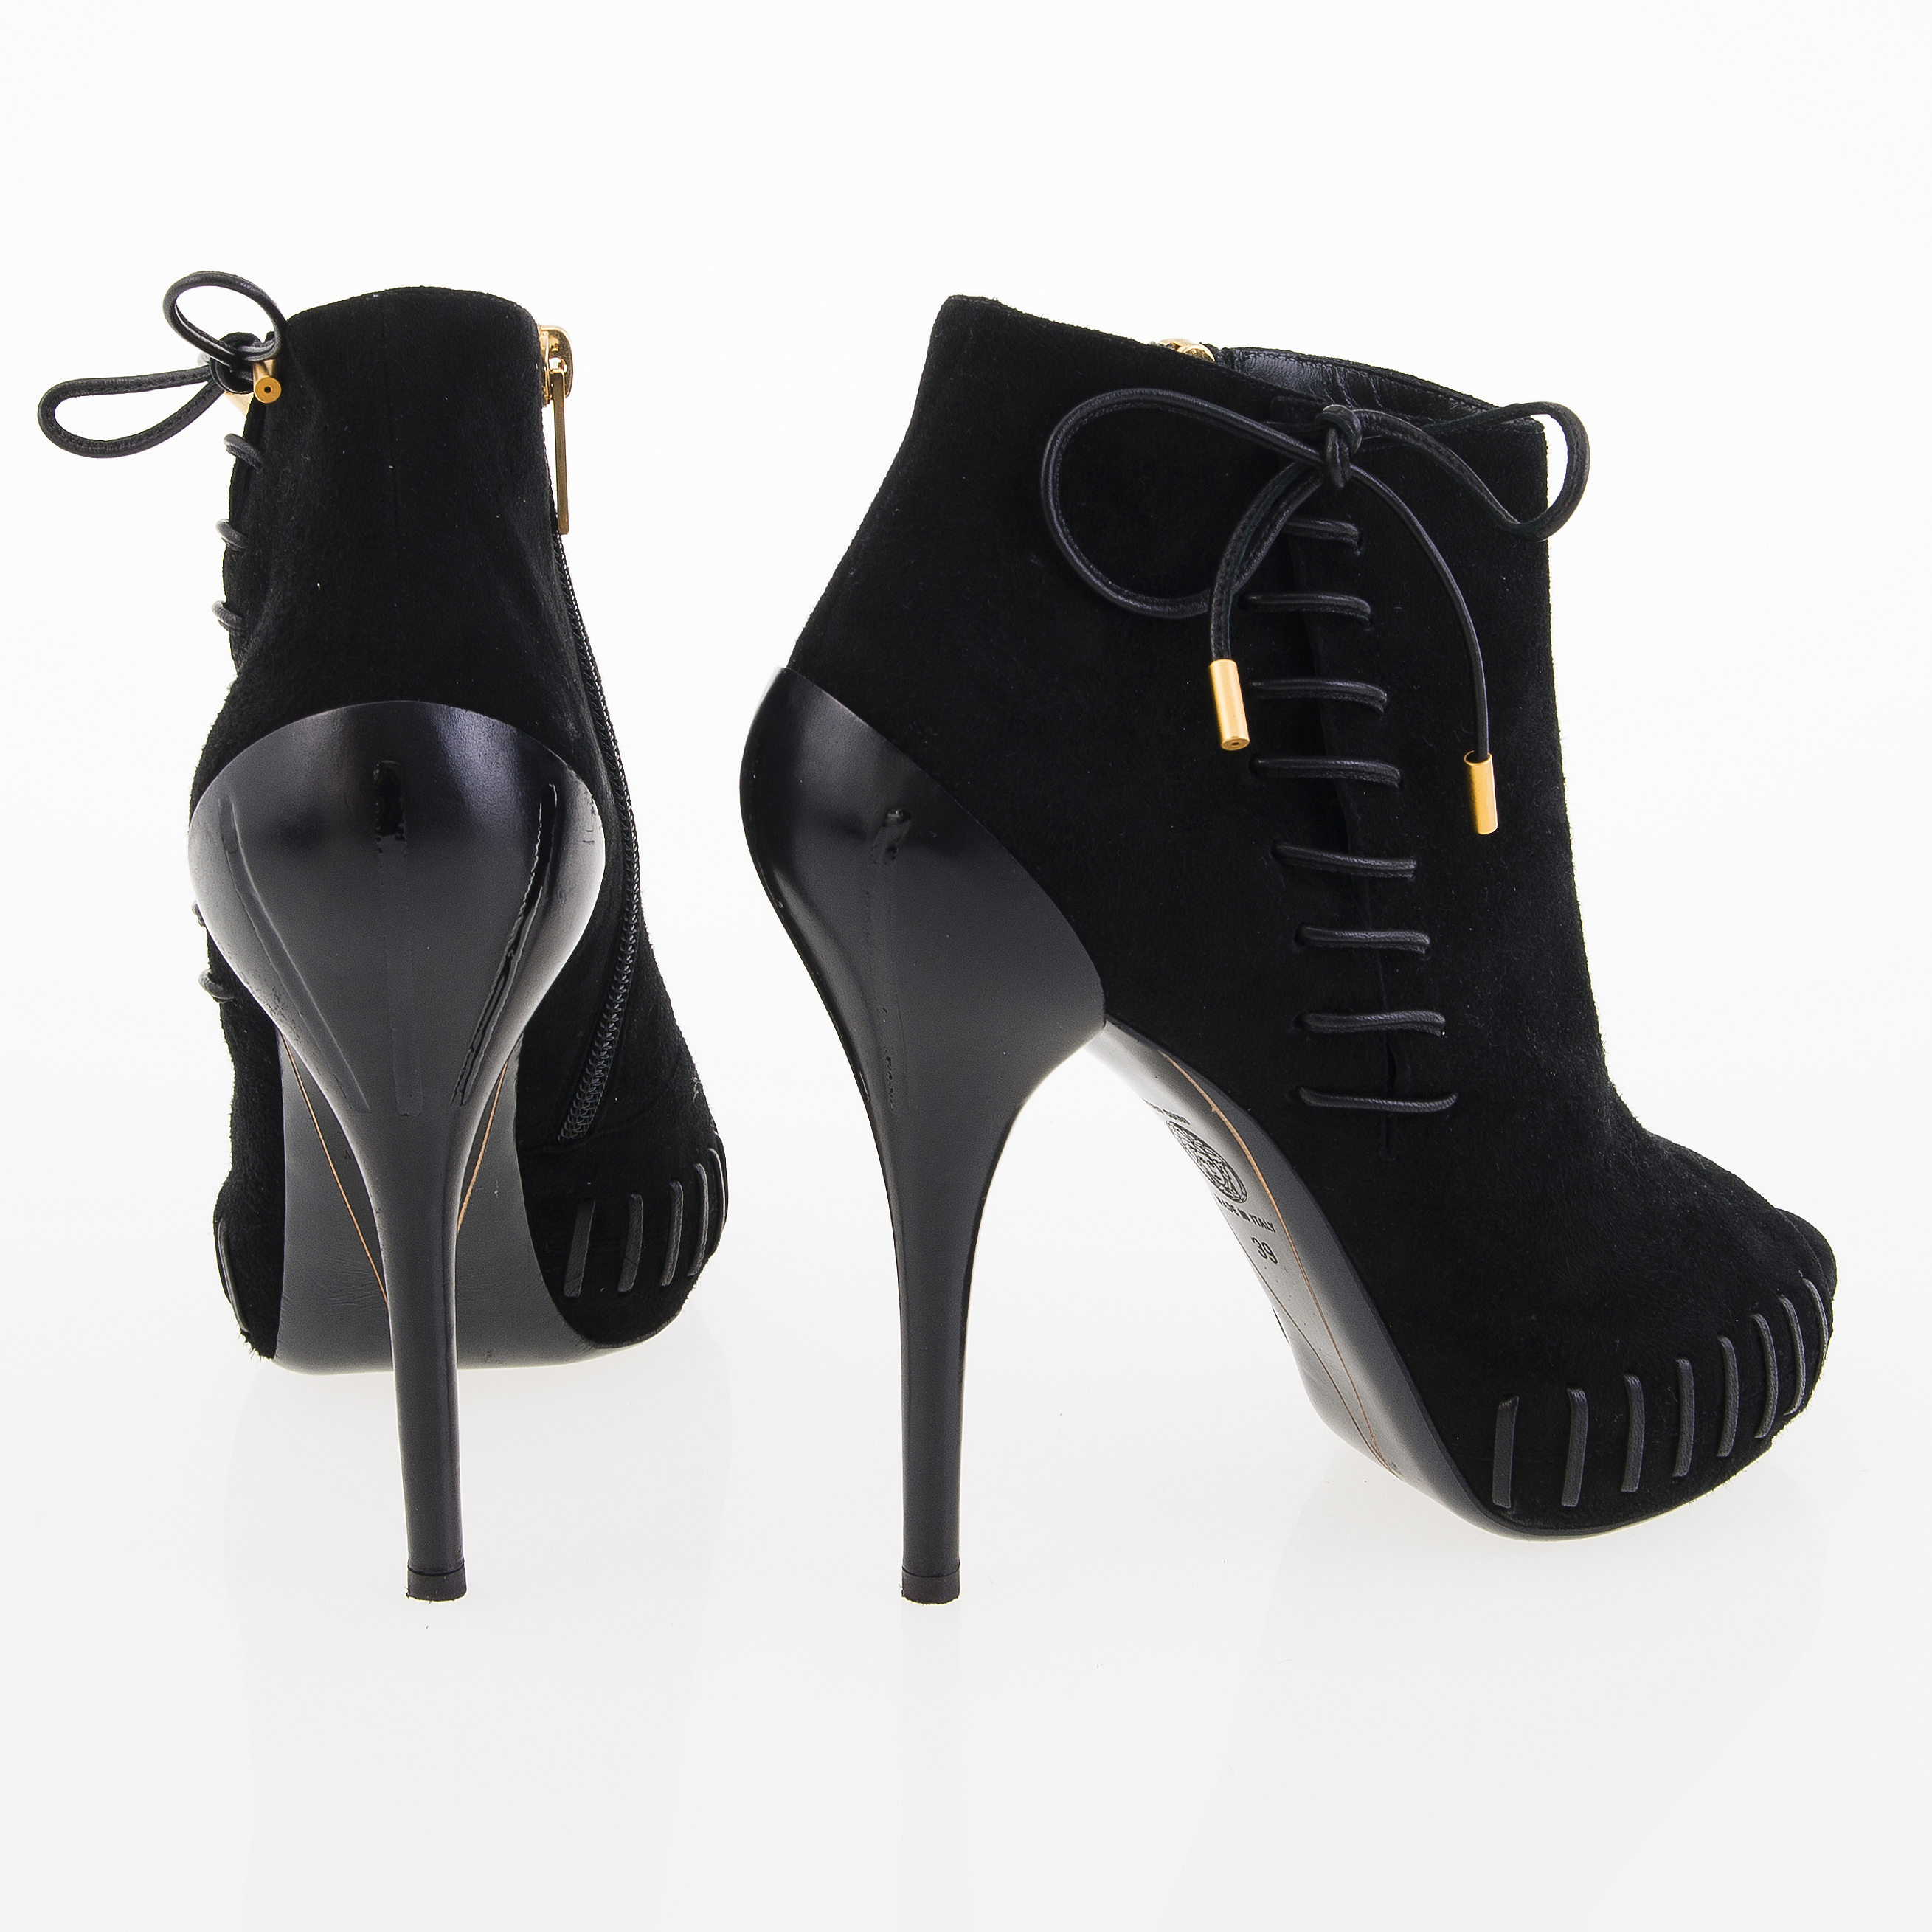 0ec006632c Versace Black Leather Open Toe Ankle Booties in size 39. - Bukowskis